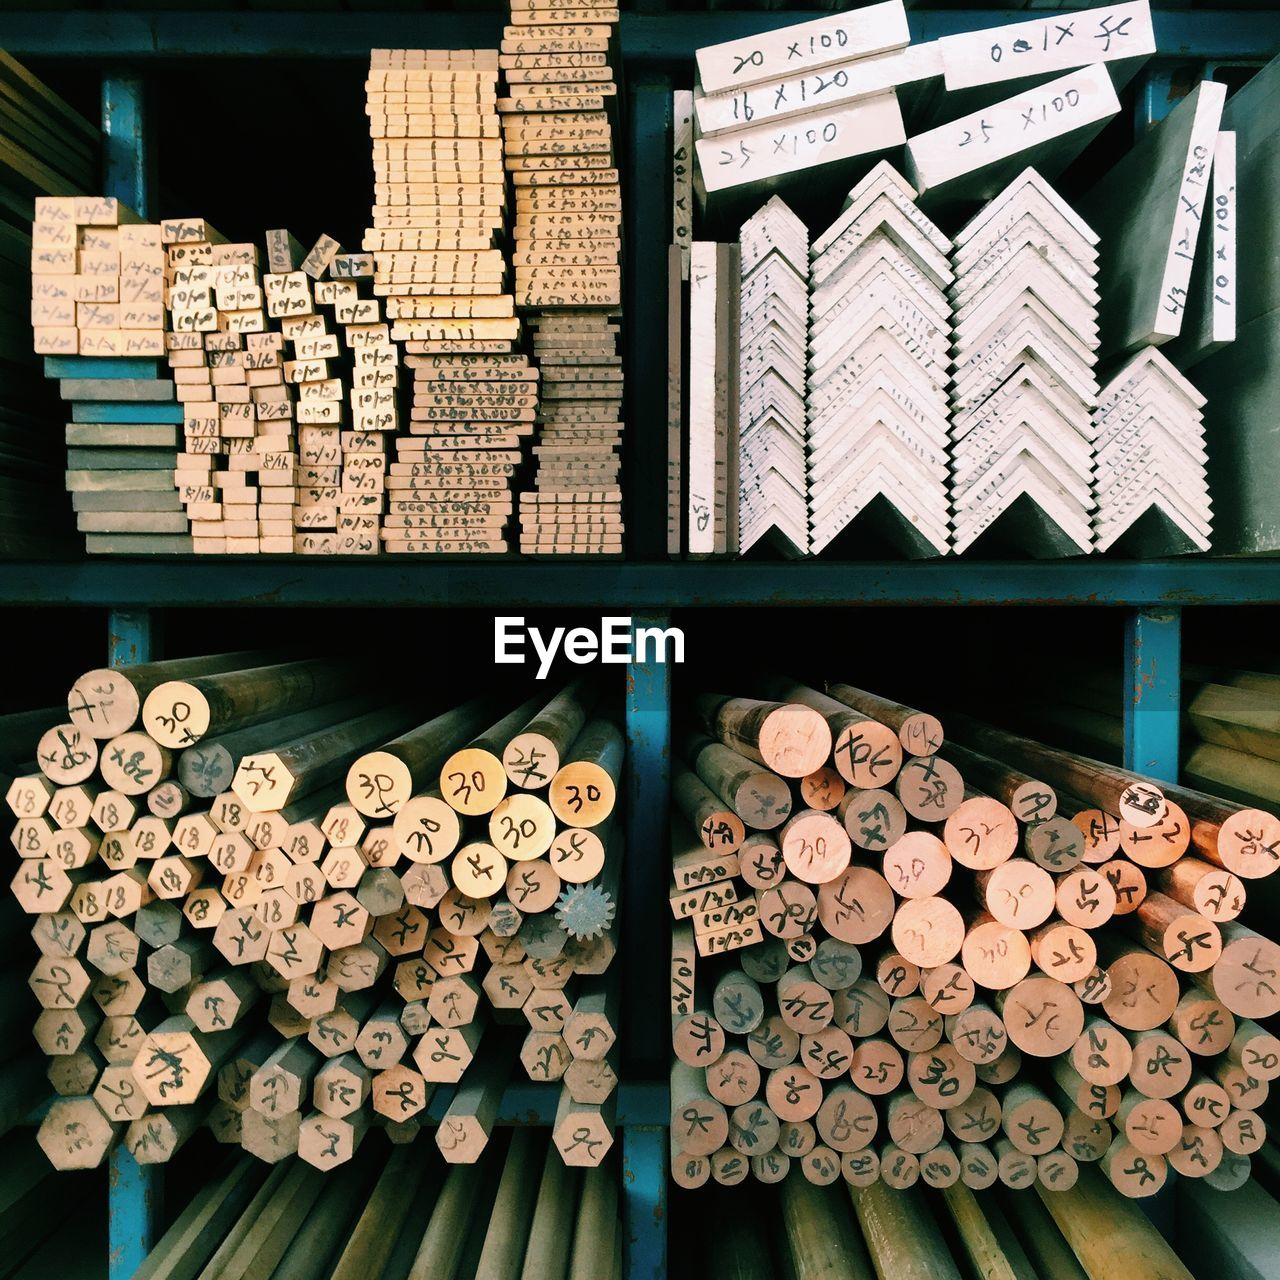 Various Wood Products Displayed At Store